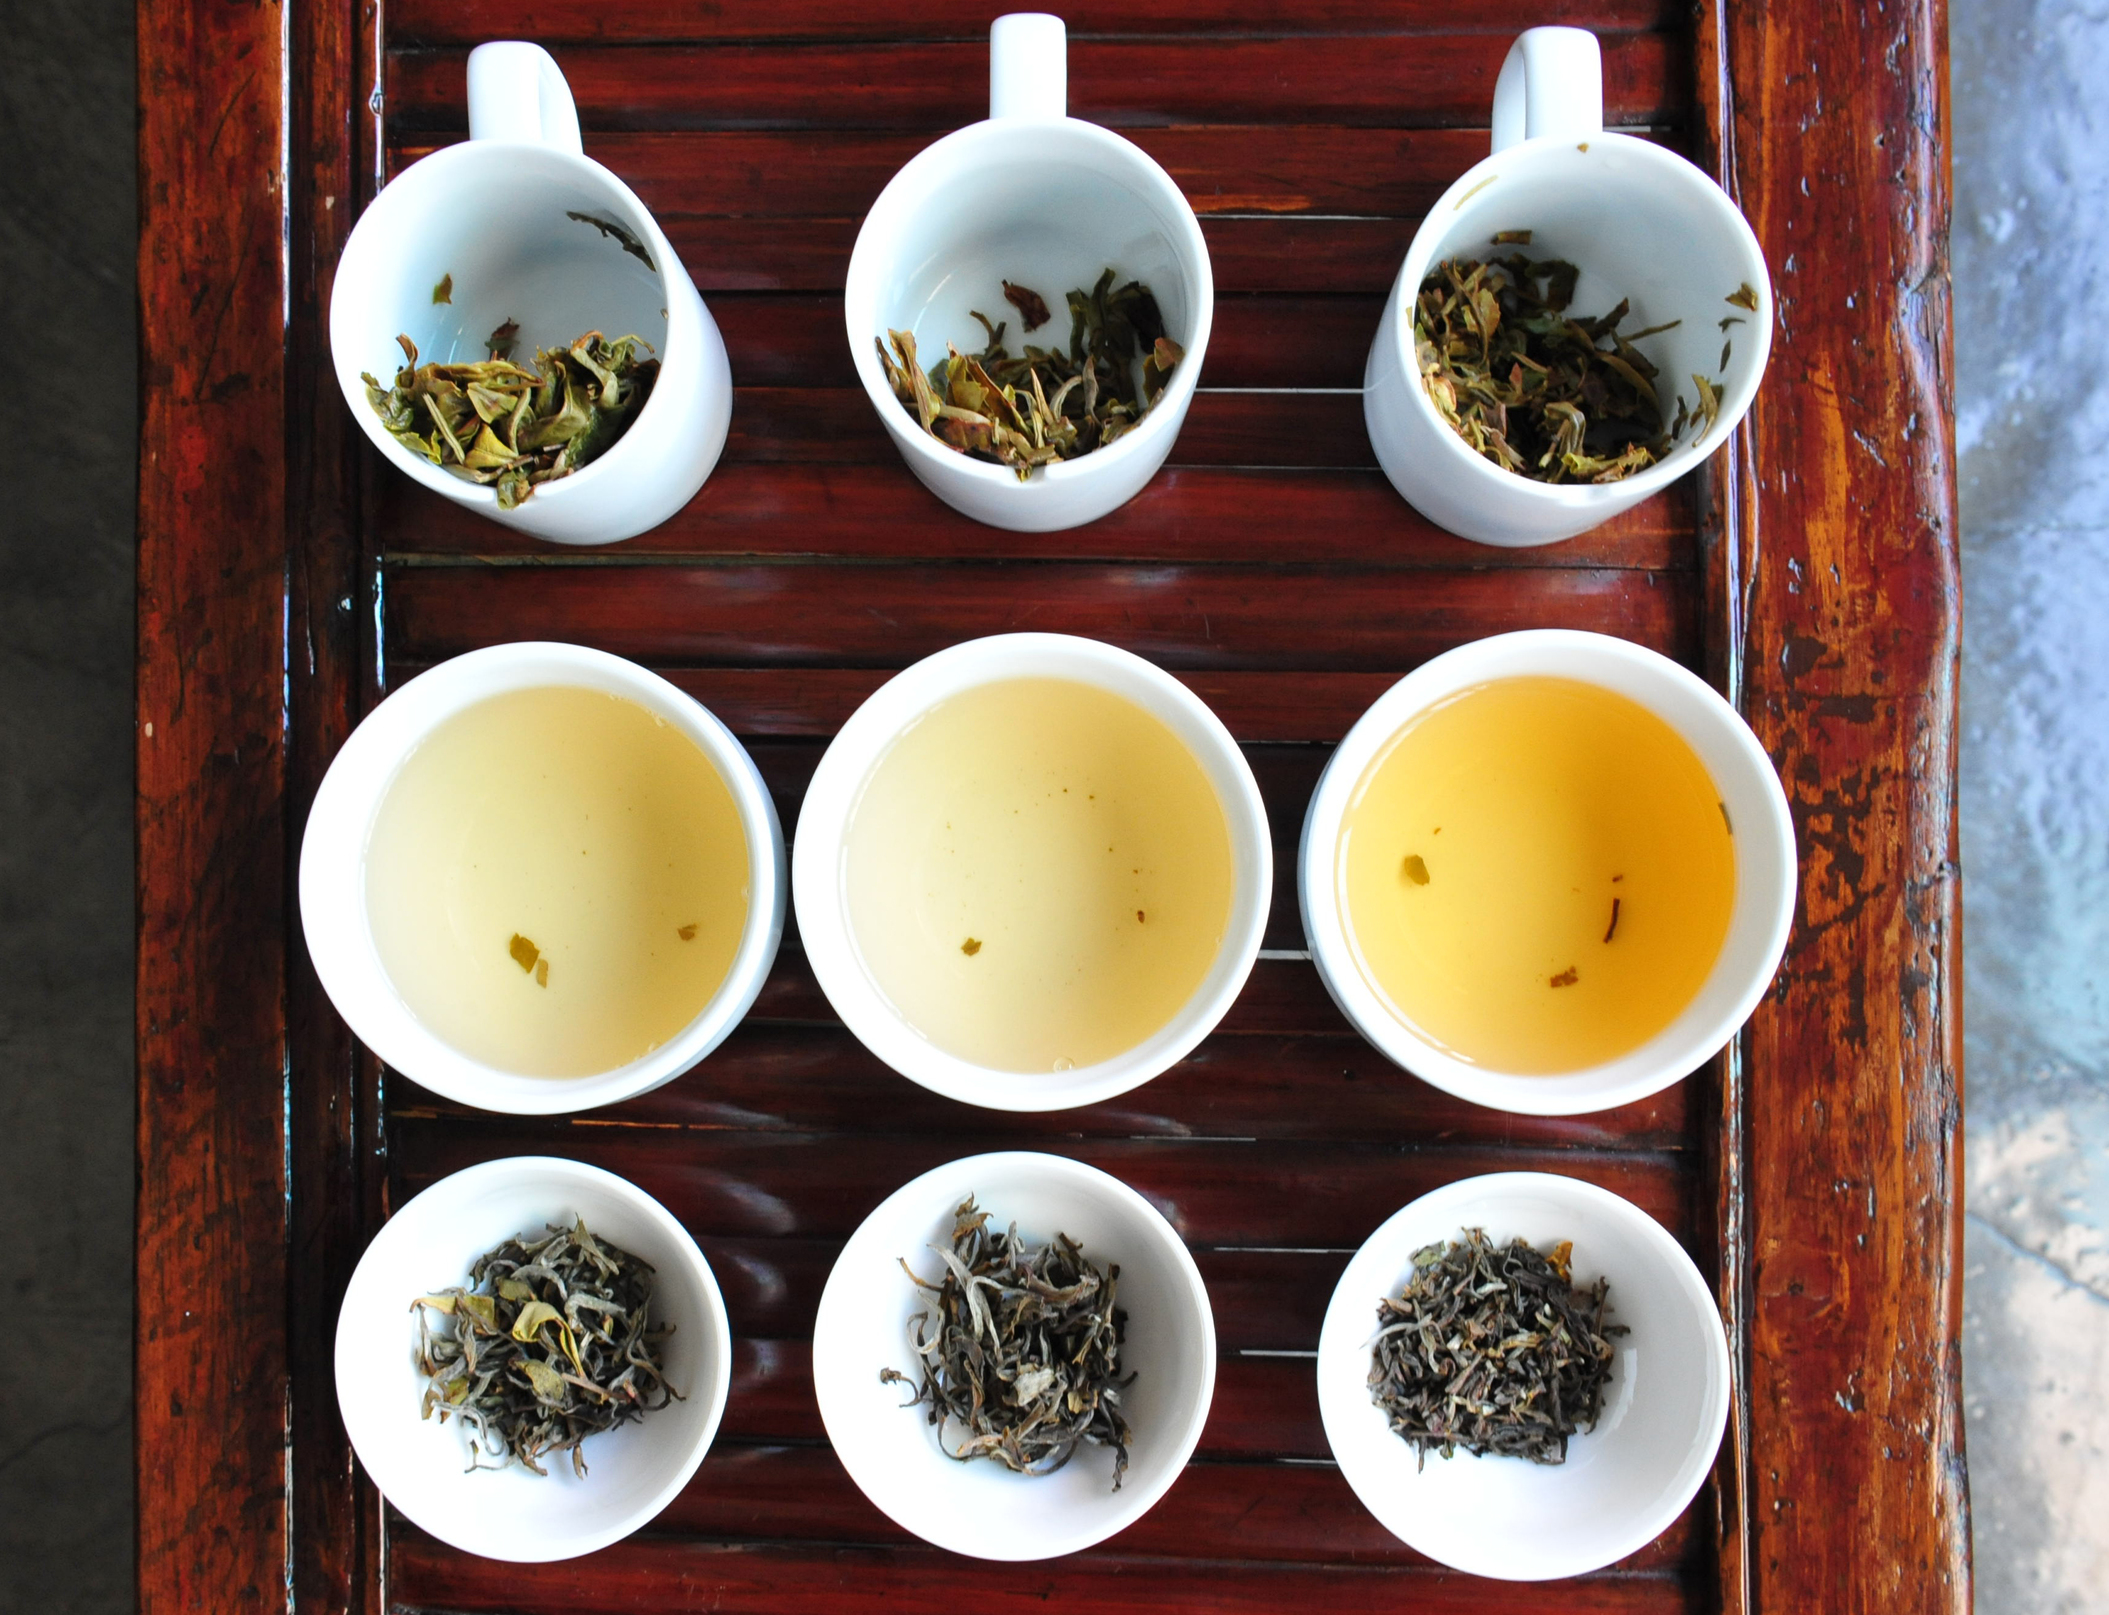 """Tea is said to be a way. This is because it is something one learns to appreciate through feeling, not through verbal instruction. If a person maintains a state of quietness, only then will one appreciate the quietness inherent in tea."" ~ Lu Yu"